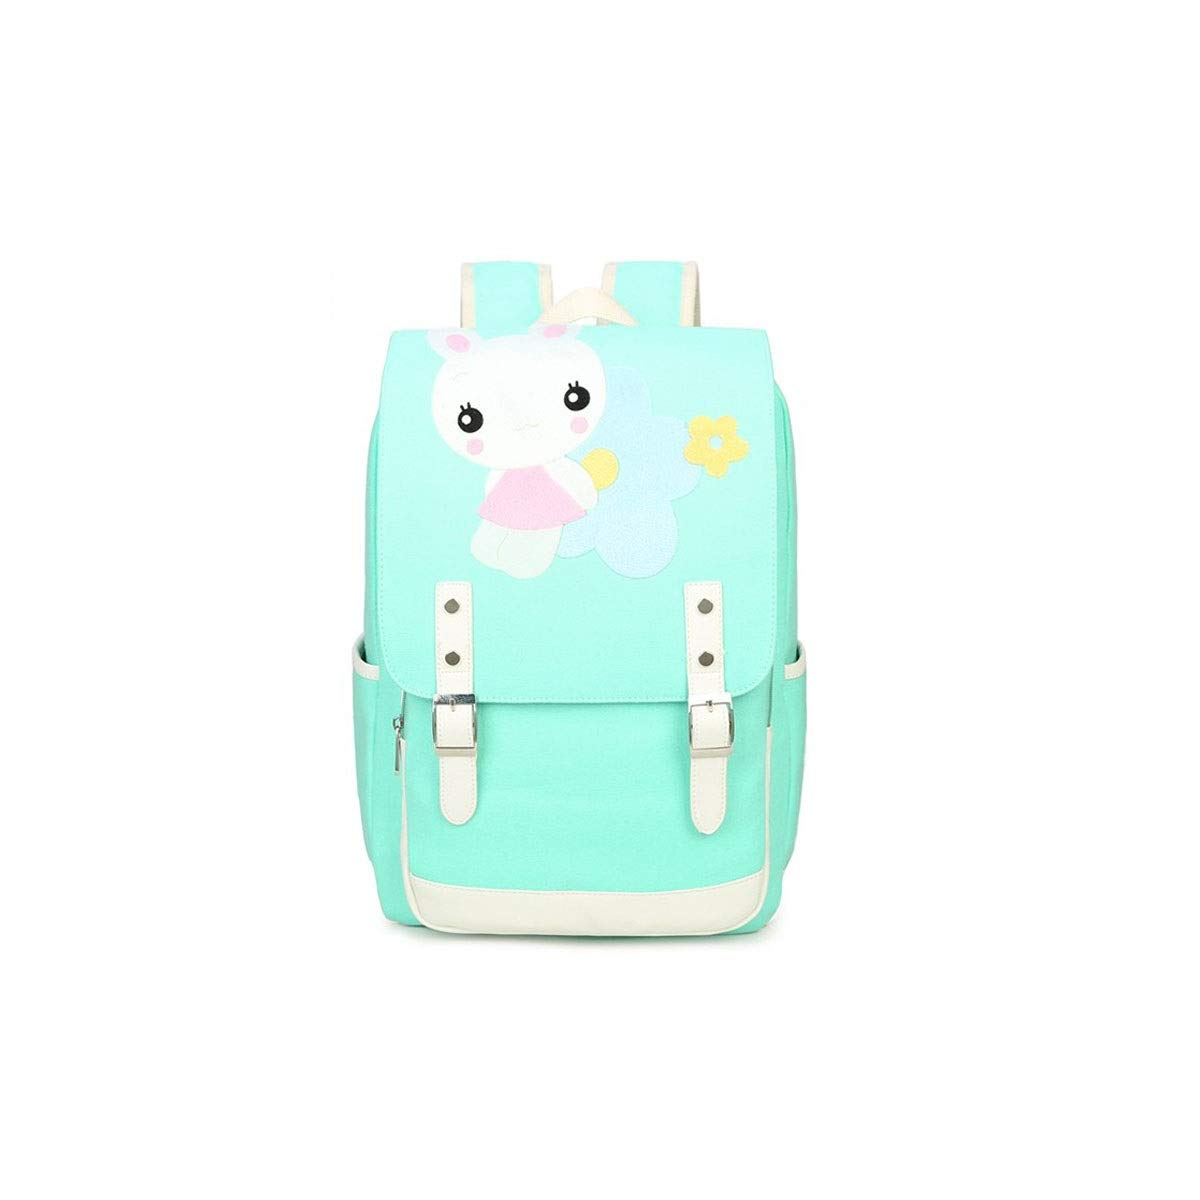 TONGBOSHI Simple Fashion Backpack, School Bag Primary School Student, Girl Leisure Travel Travel Backpack, Lightweight Backpack (Color : Green, Size : S)